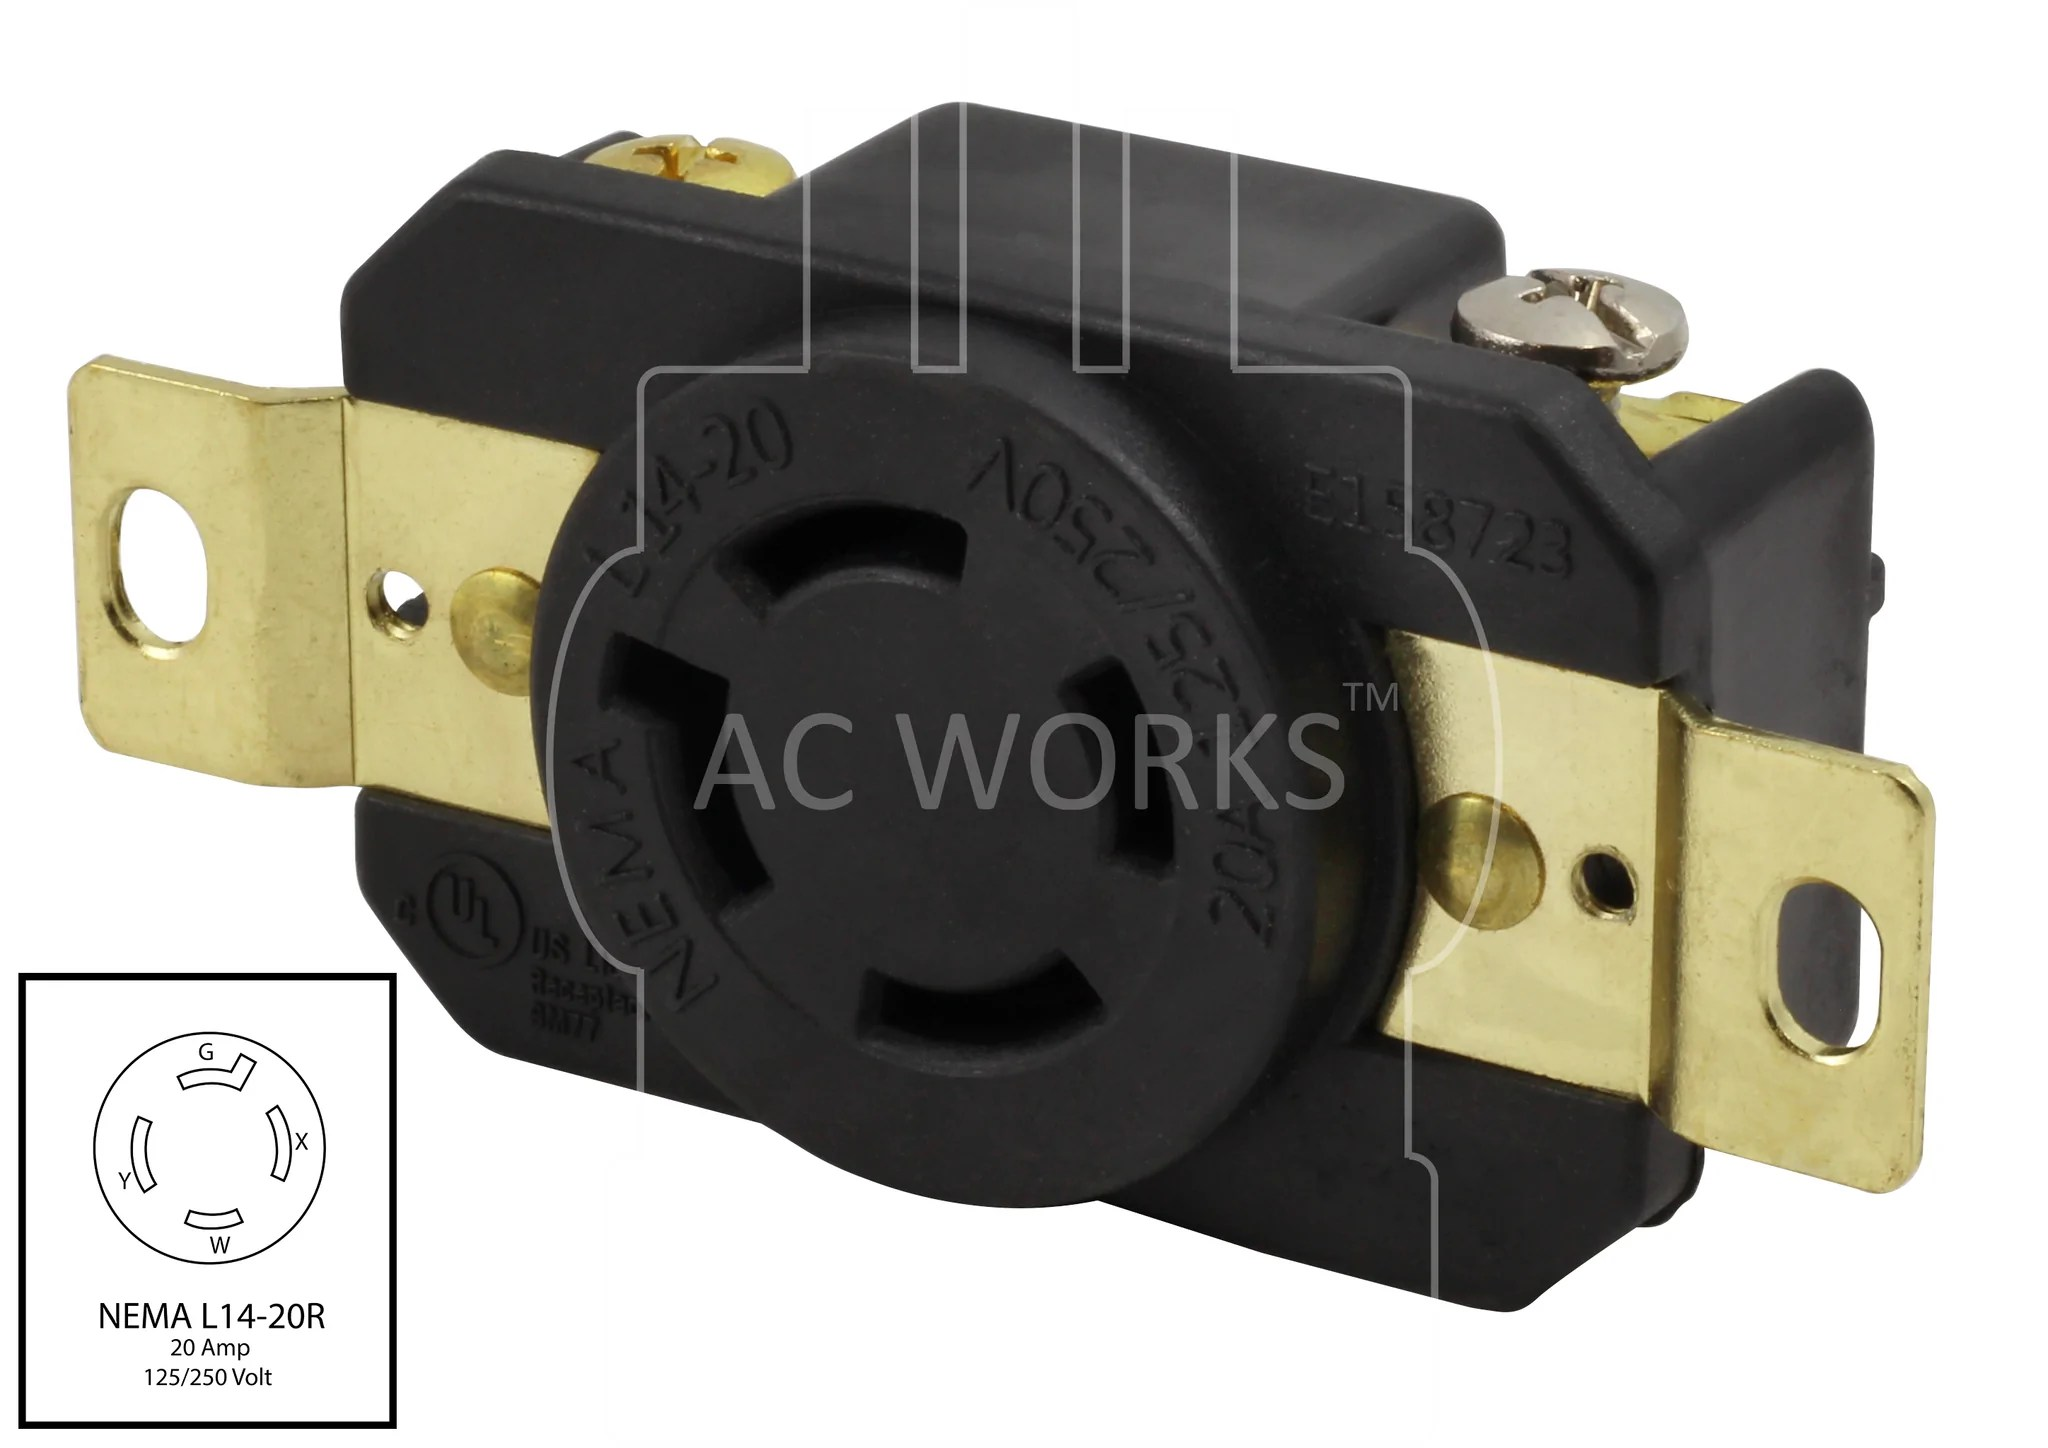 medium resolution of  ac works ac connectors flush mount receptacle nema l14 20r l1420